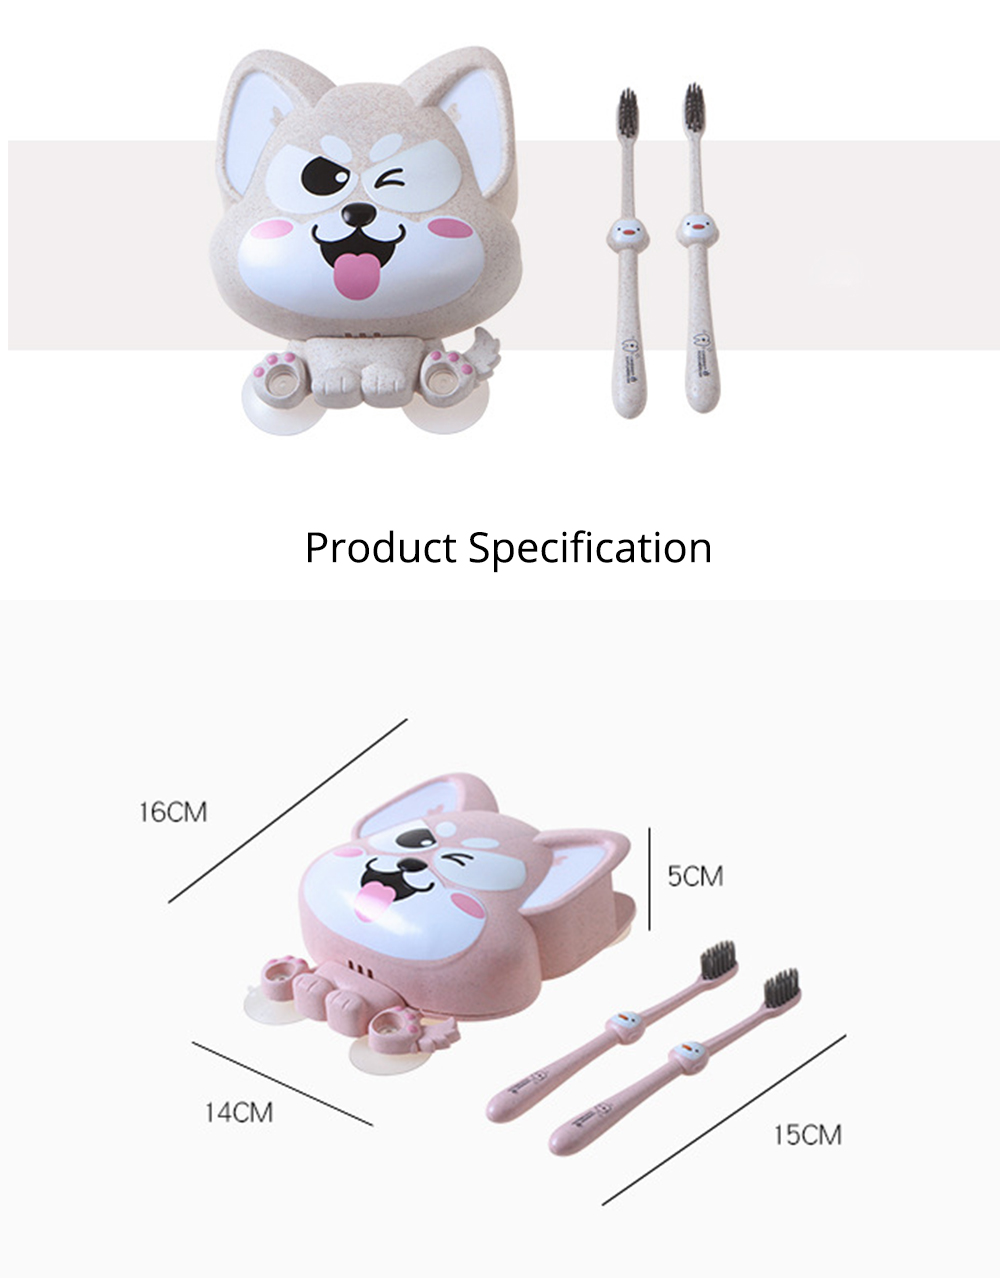 Wall Mounted Toothbrush Hanger for Bathroom, Fox Shape Toothbrush Holder for Family Couples Roommates Use 9